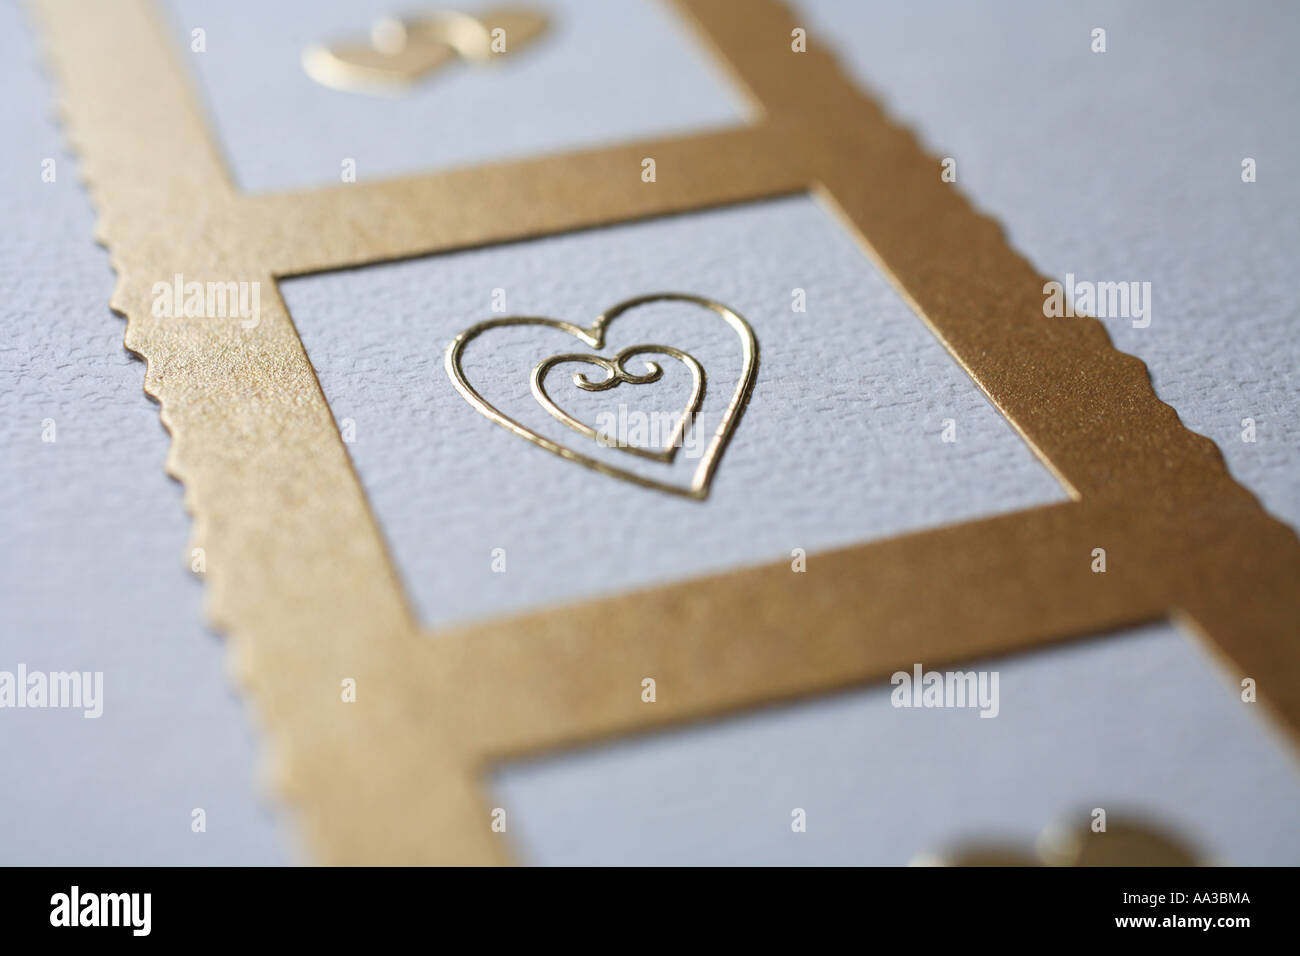 embossed heart on wedding stationary - Stock Image